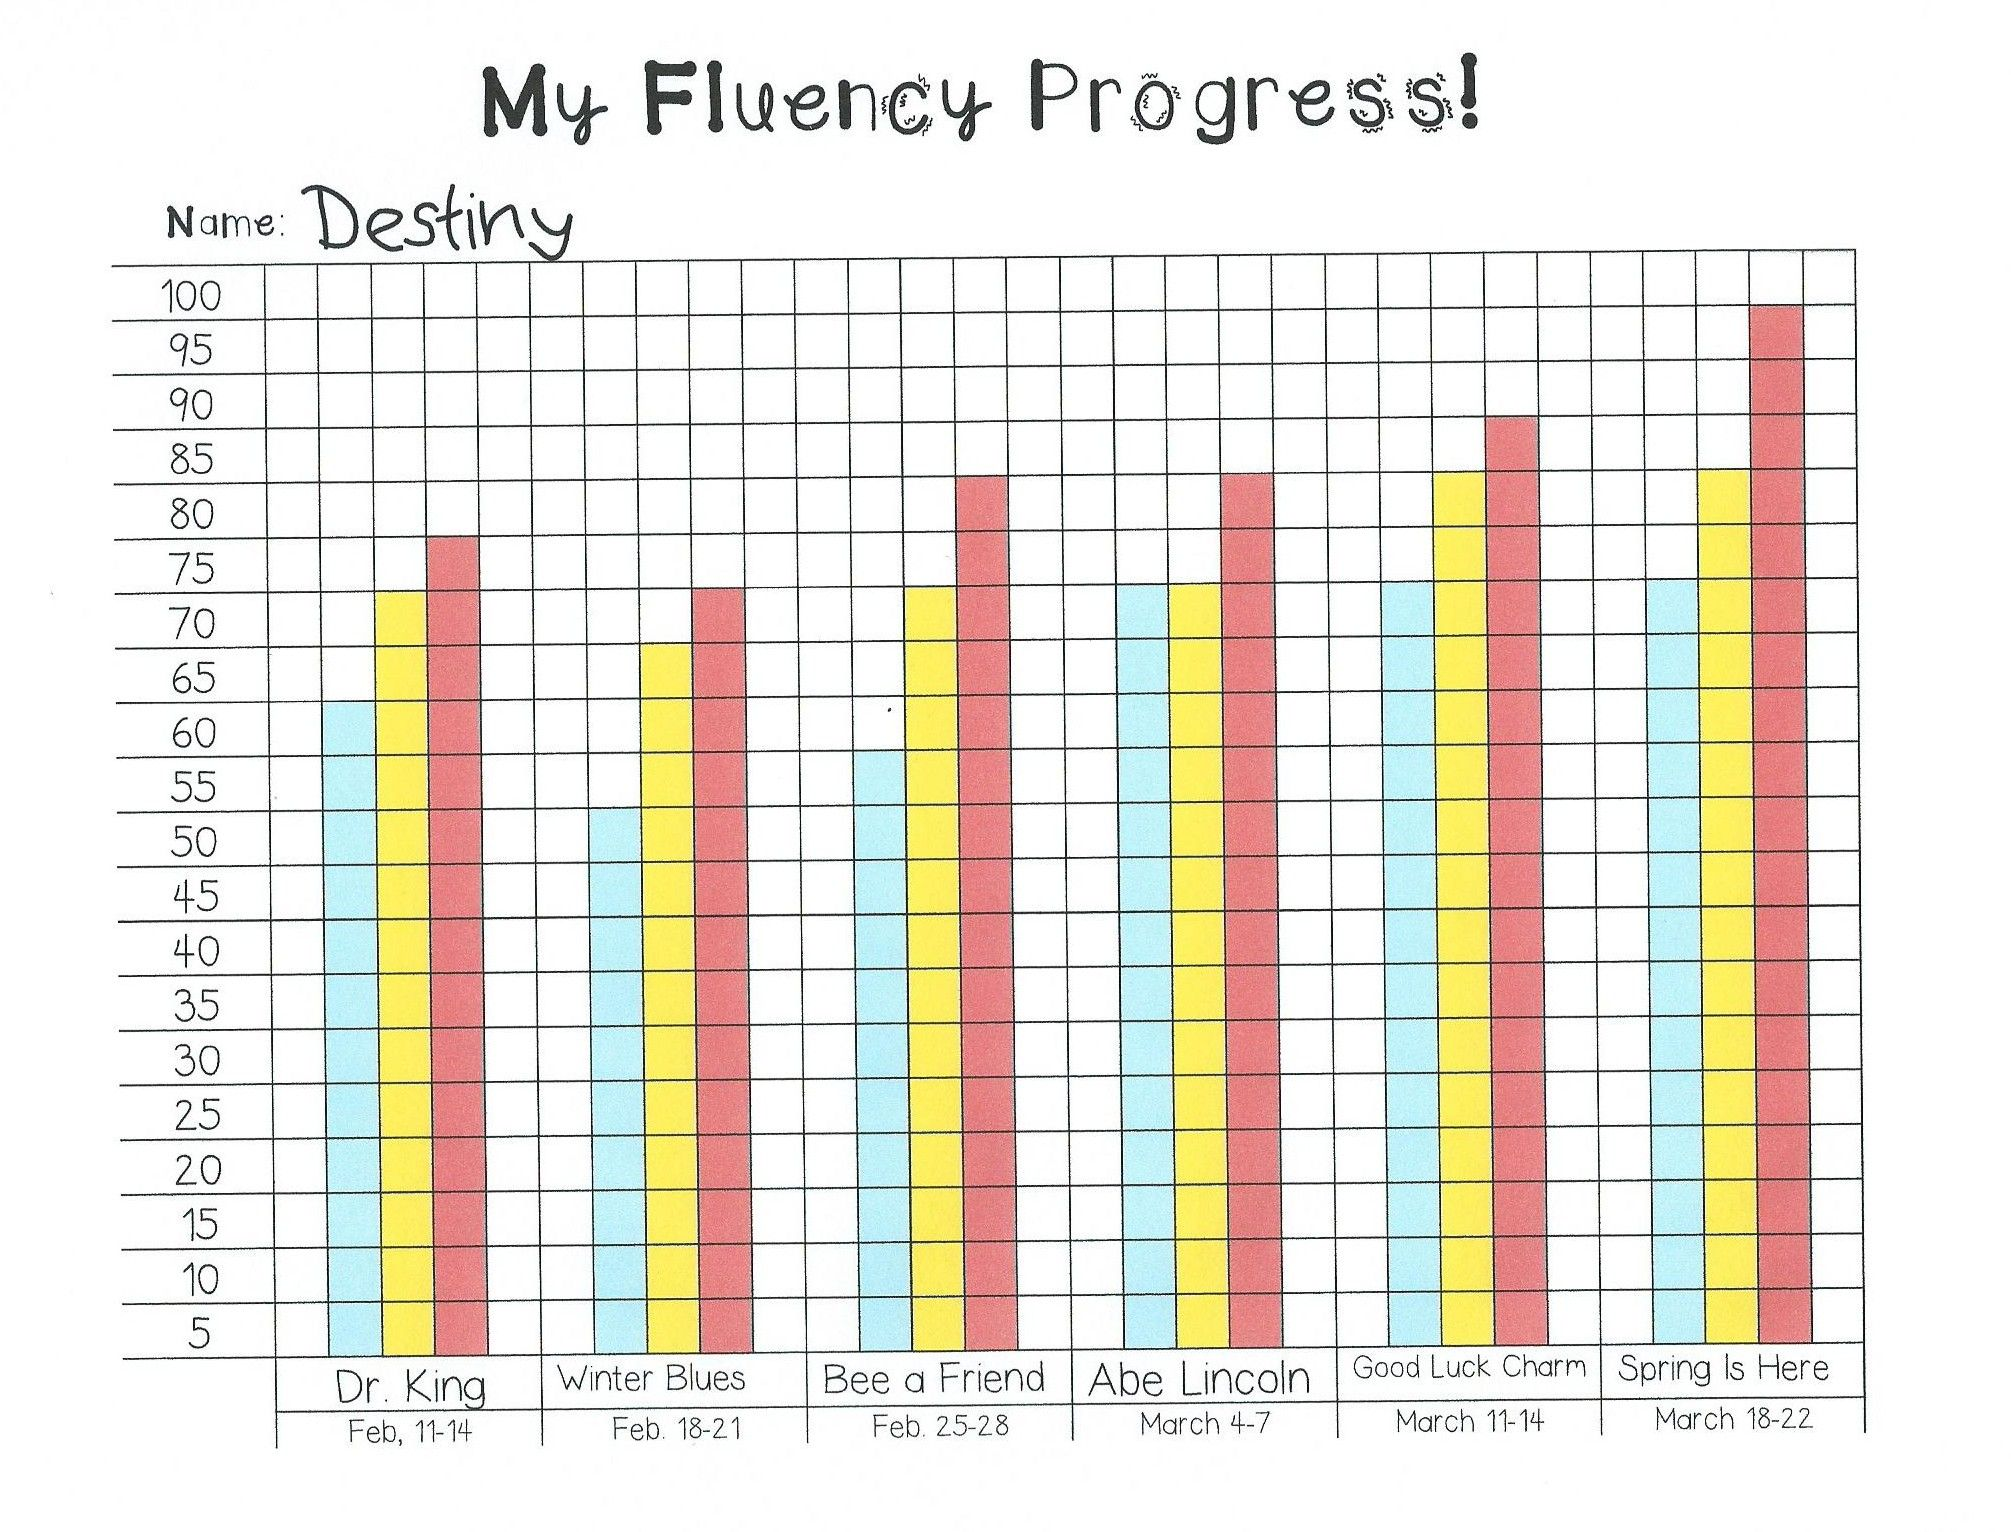 worksheet Reading Comprehension Charts And Graphs Worksheets my fluency progress monitoring graph guided reading and literacy graph